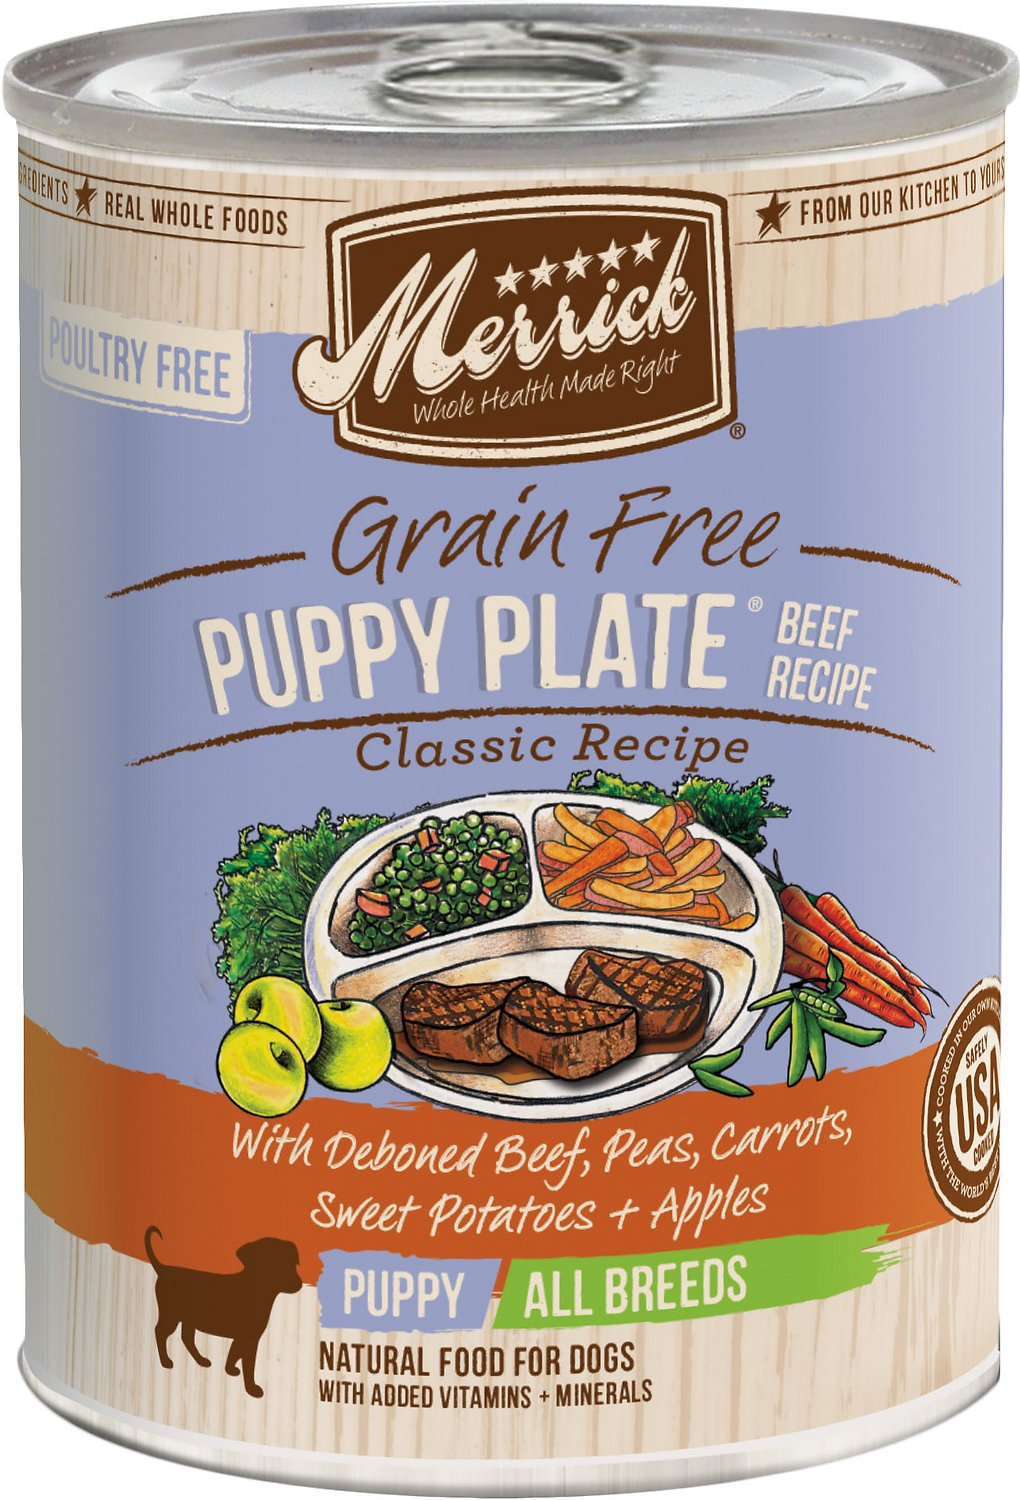 Merrick Grain-Free Puppy Plate Beef Recipe Canned Dog Food Image